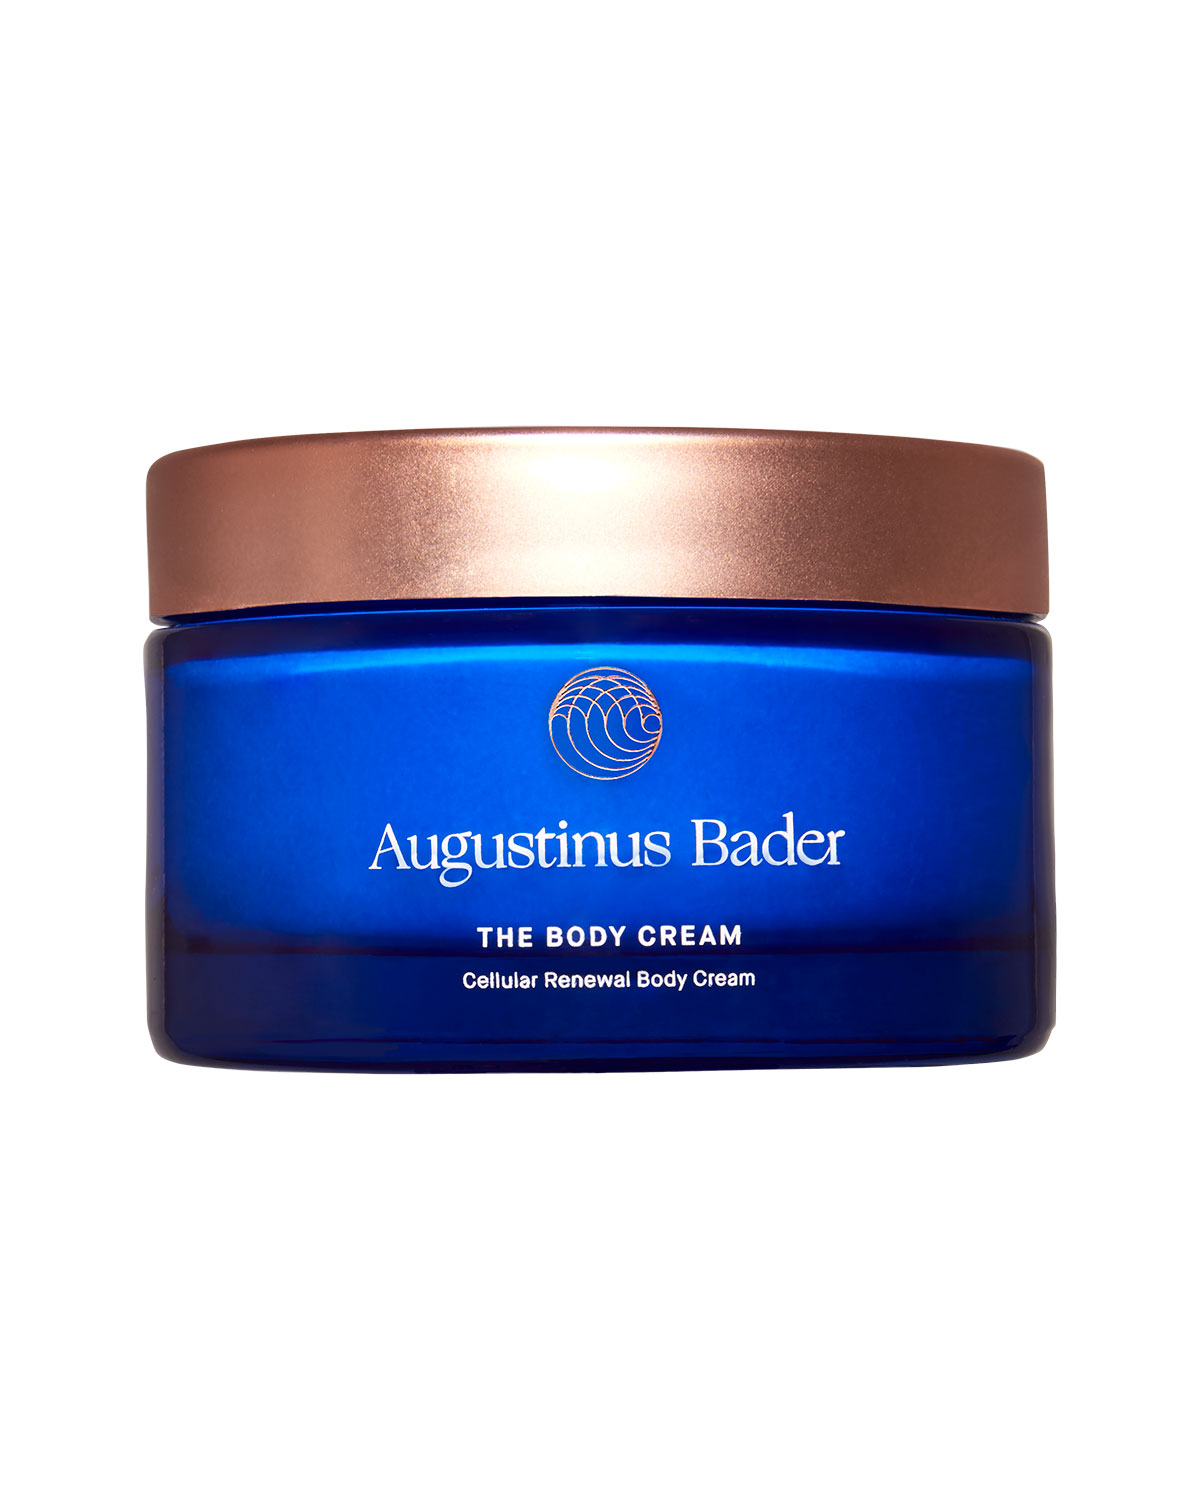 Augustinus Bader 5.7 oz. The Body Cream